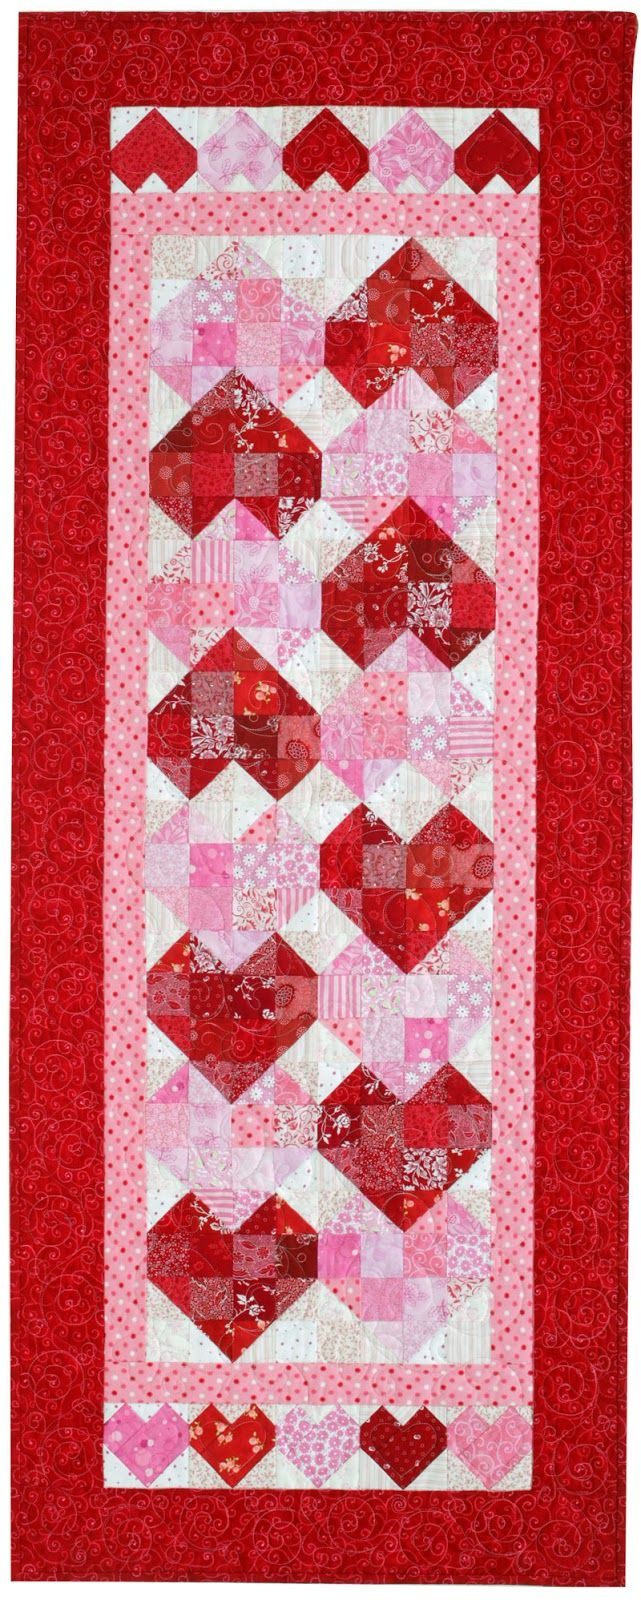 17 Best images about Table Runners/Bed Scarfs on Pinterest Runners, Stitches and Bed runner